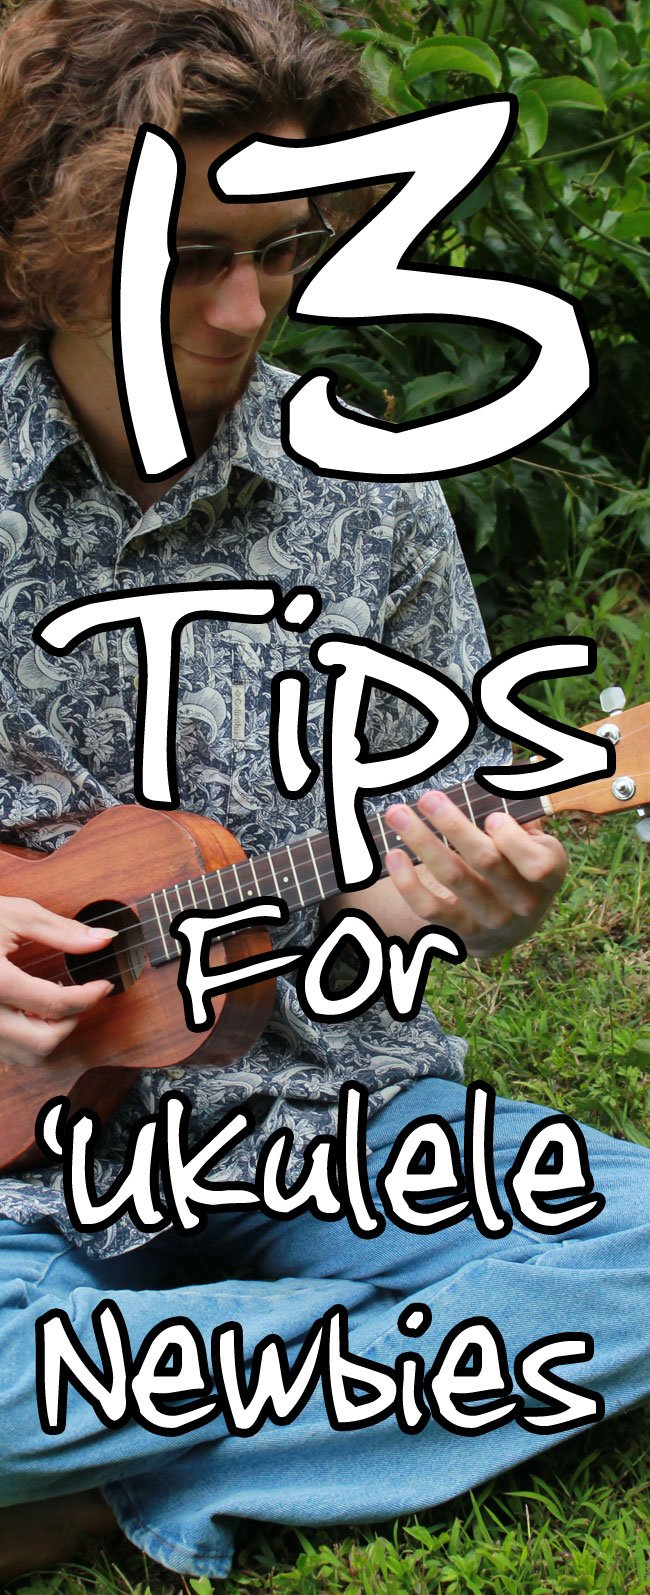 13 Tips For Ukulele Newbies: How To Play The Ukulele